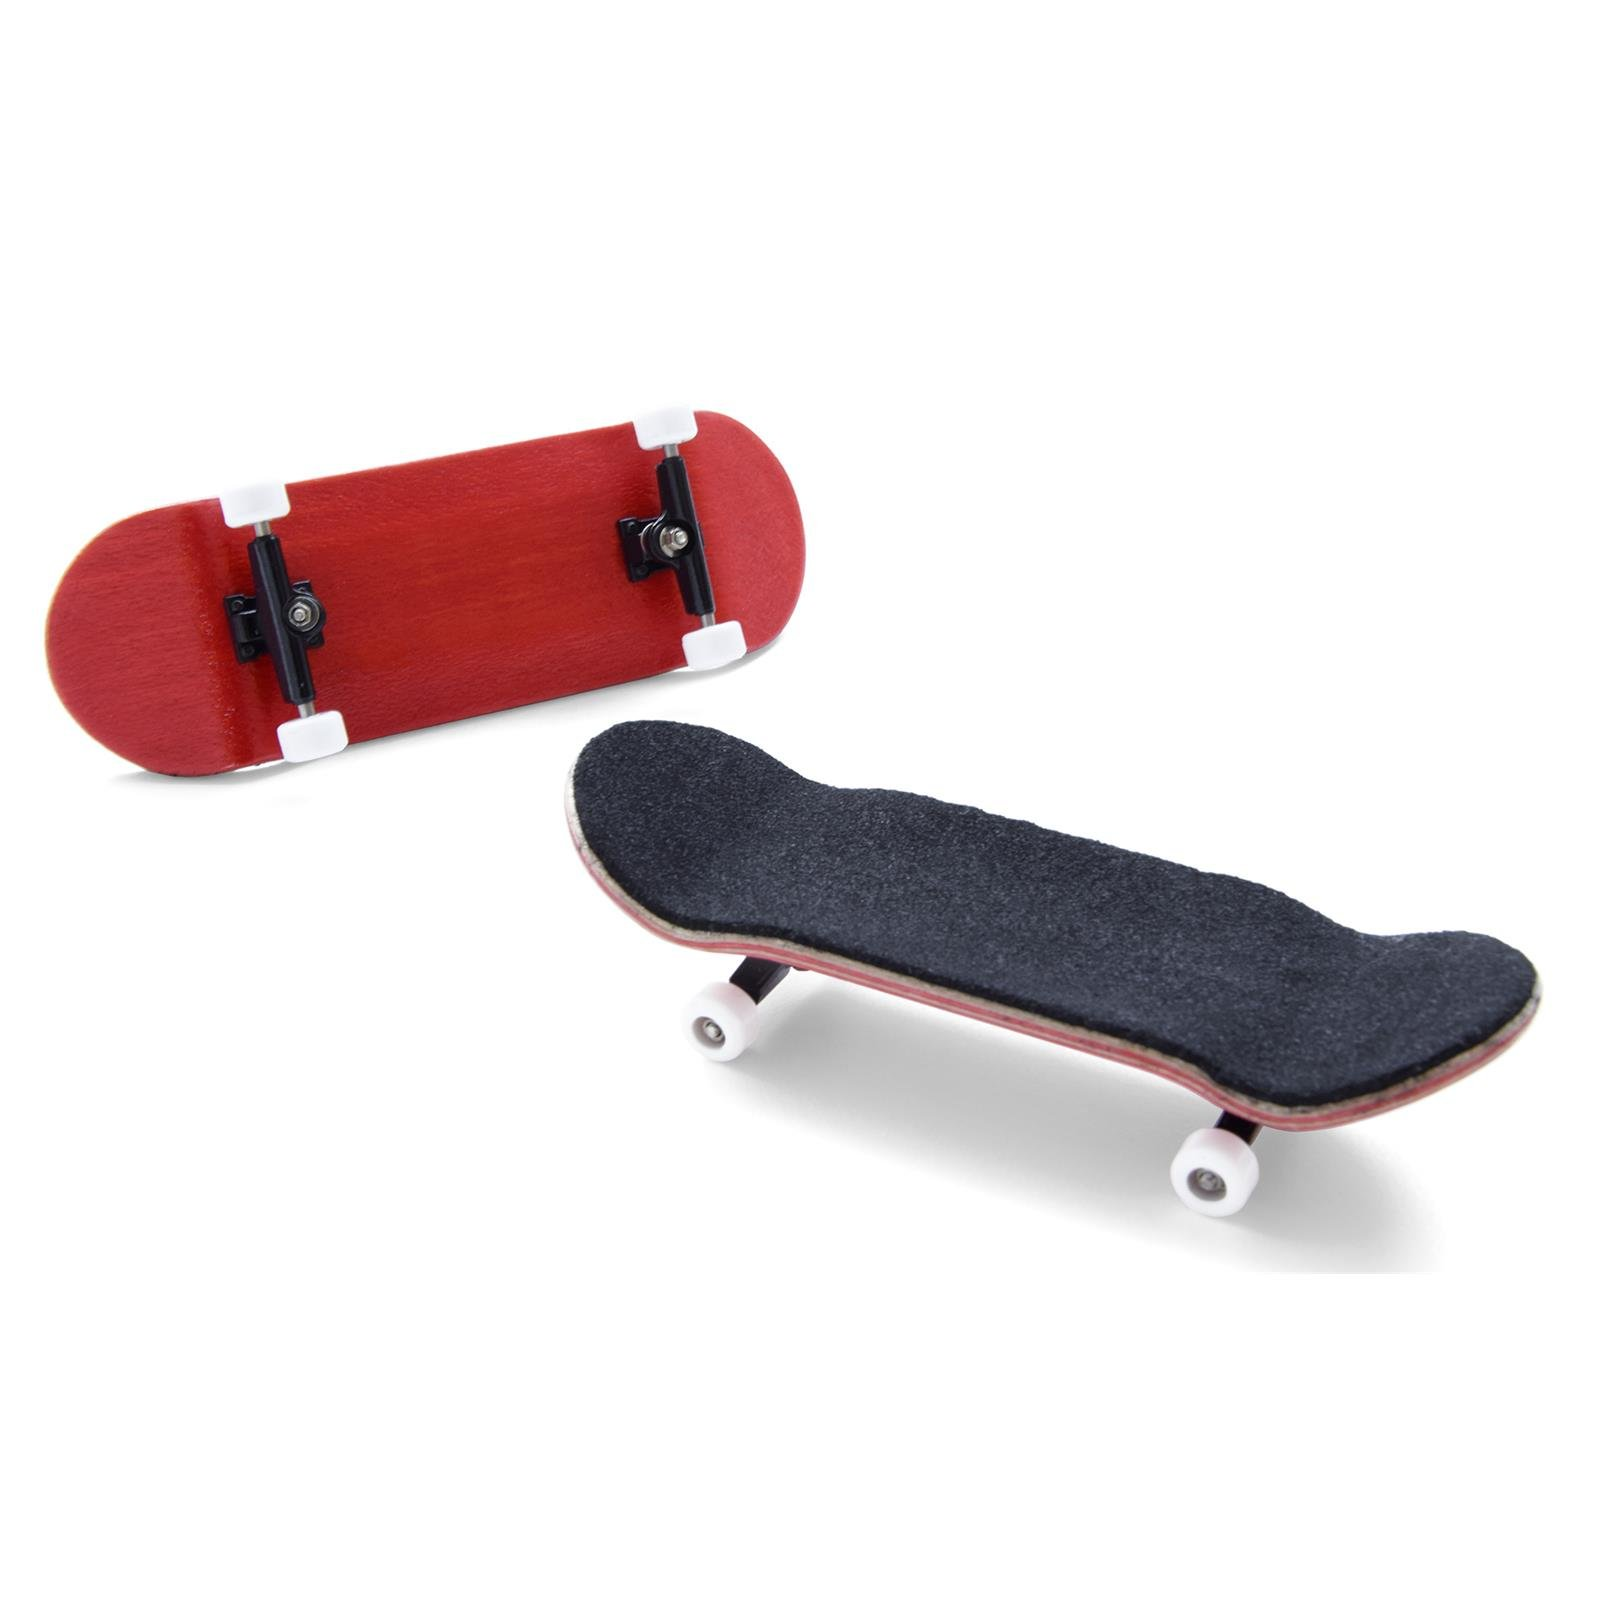 Mini finger skateboard – in red with ball bearings (assembly kit)